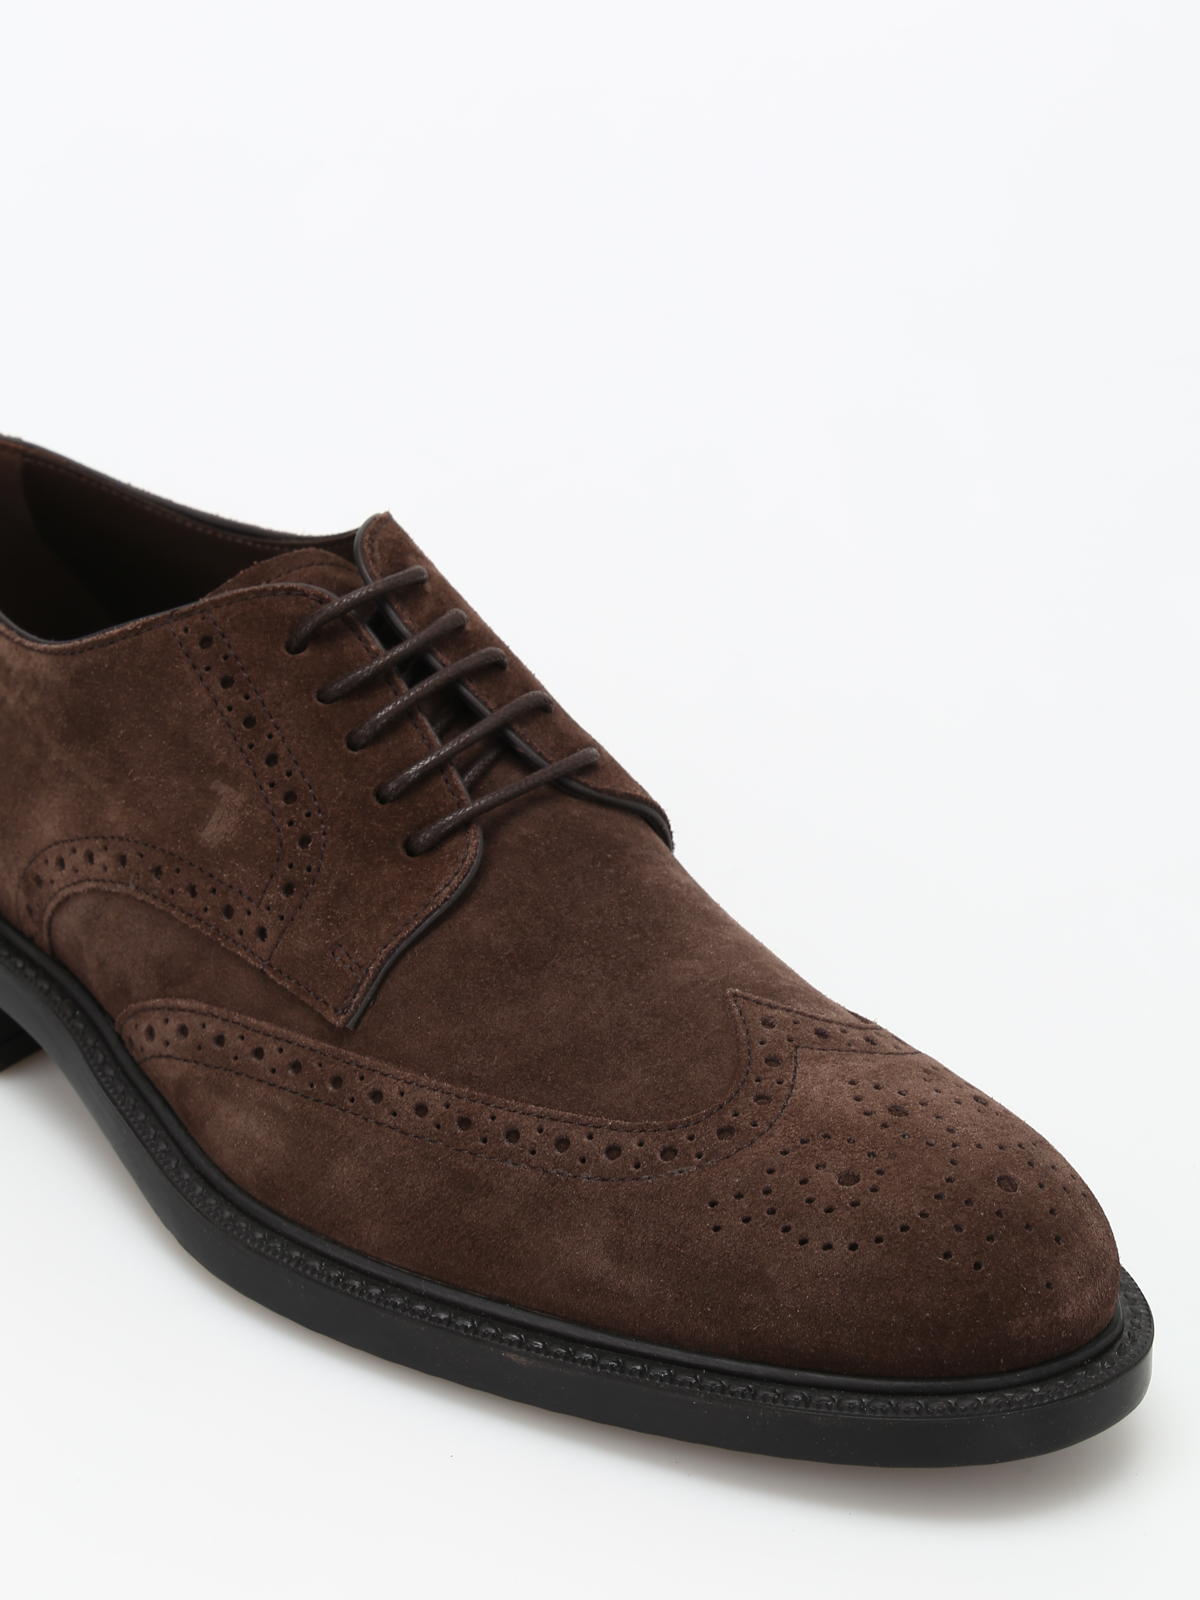 Suede Derby brogues - lace-ups shoes